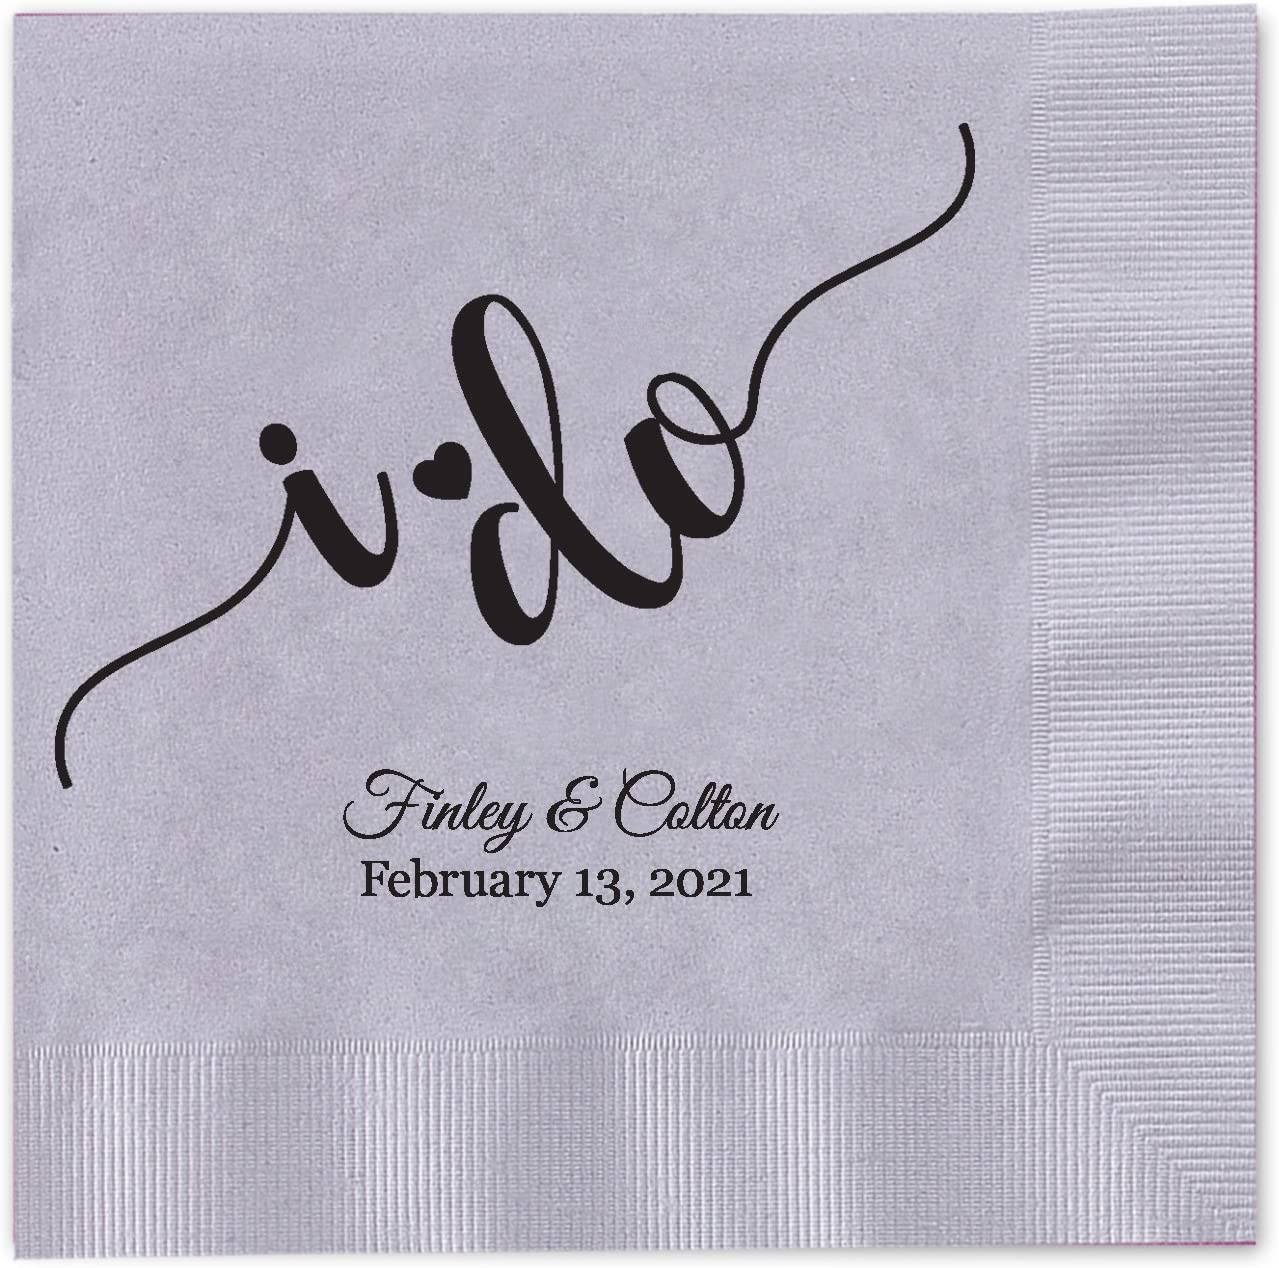 I do Calligraphy Personalized Beverage Napkins Cocktail Max 88% OFF 100 Ranking integrated 1st place - Cu